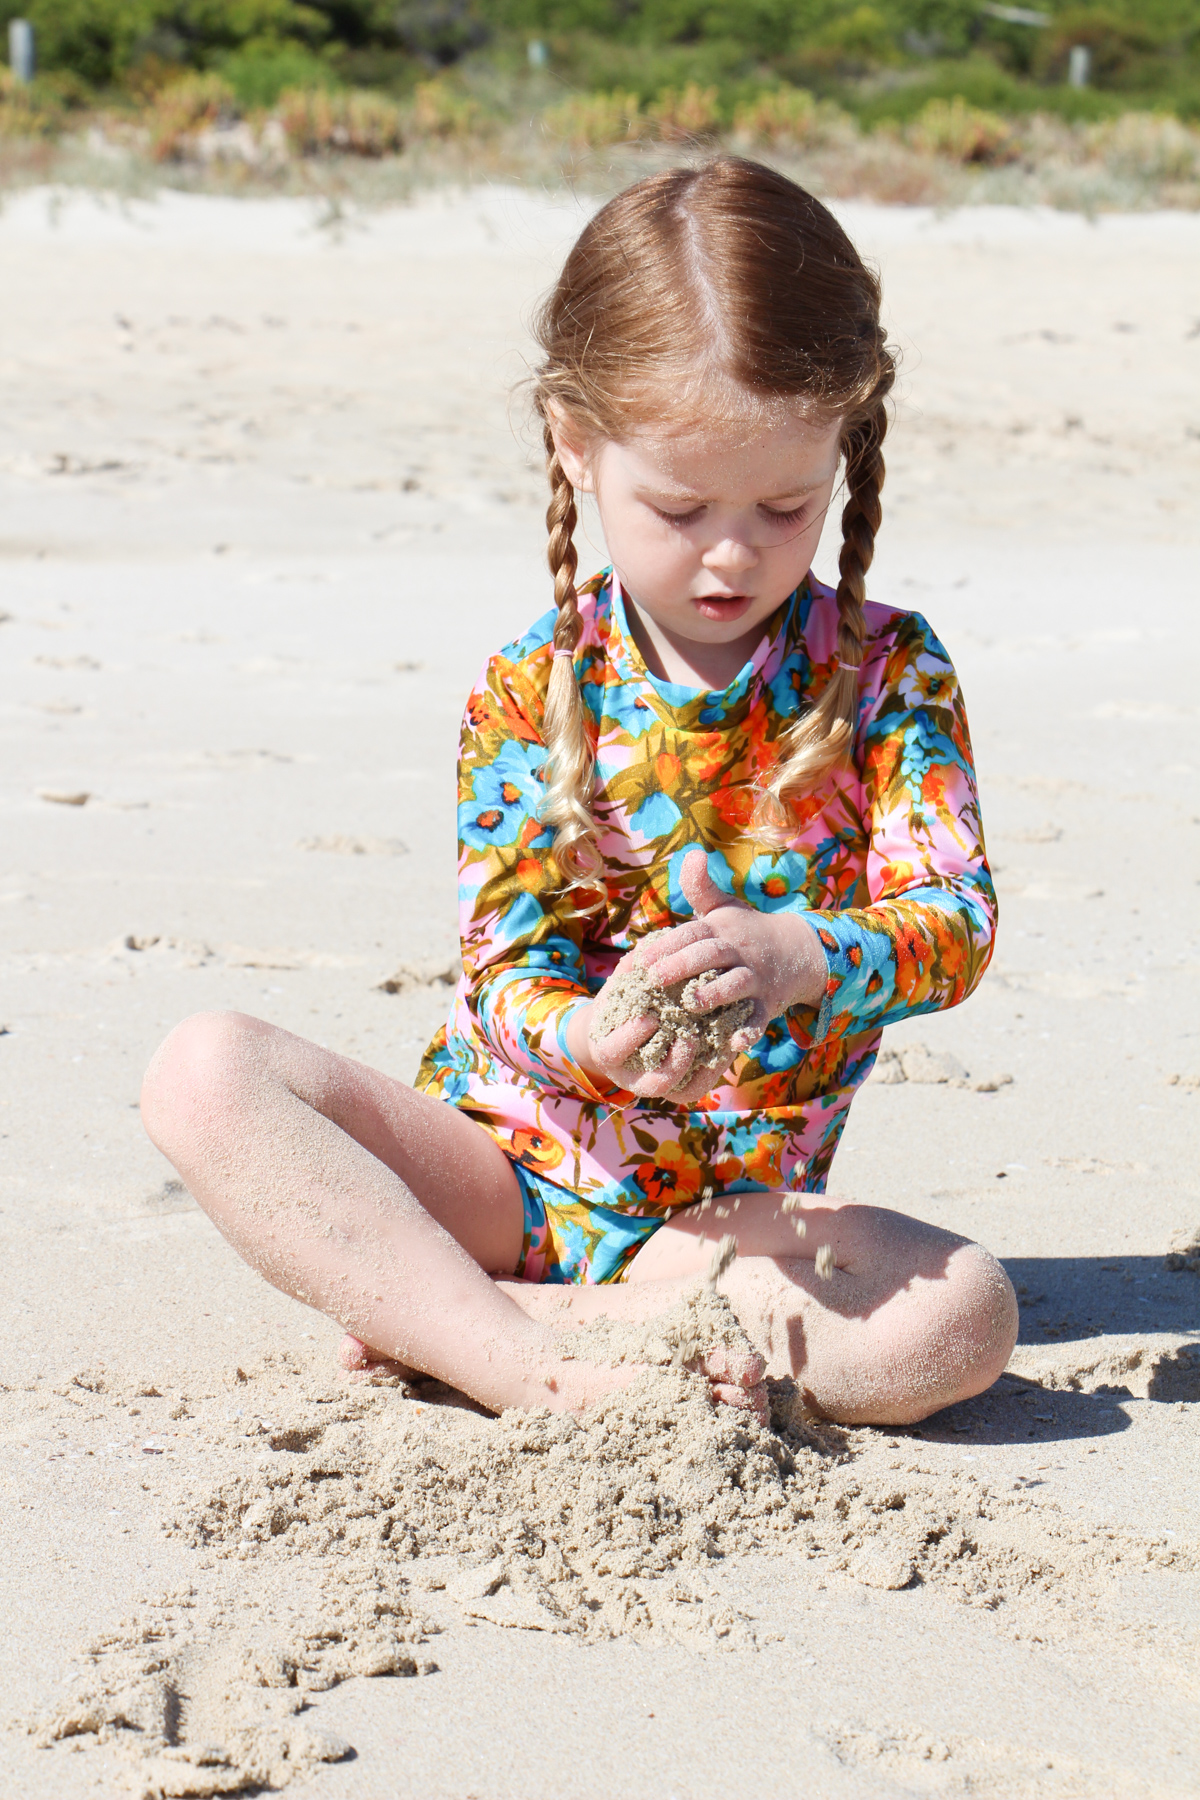 Megan Nielsen handmade swimsuits at Bunker Bay WA